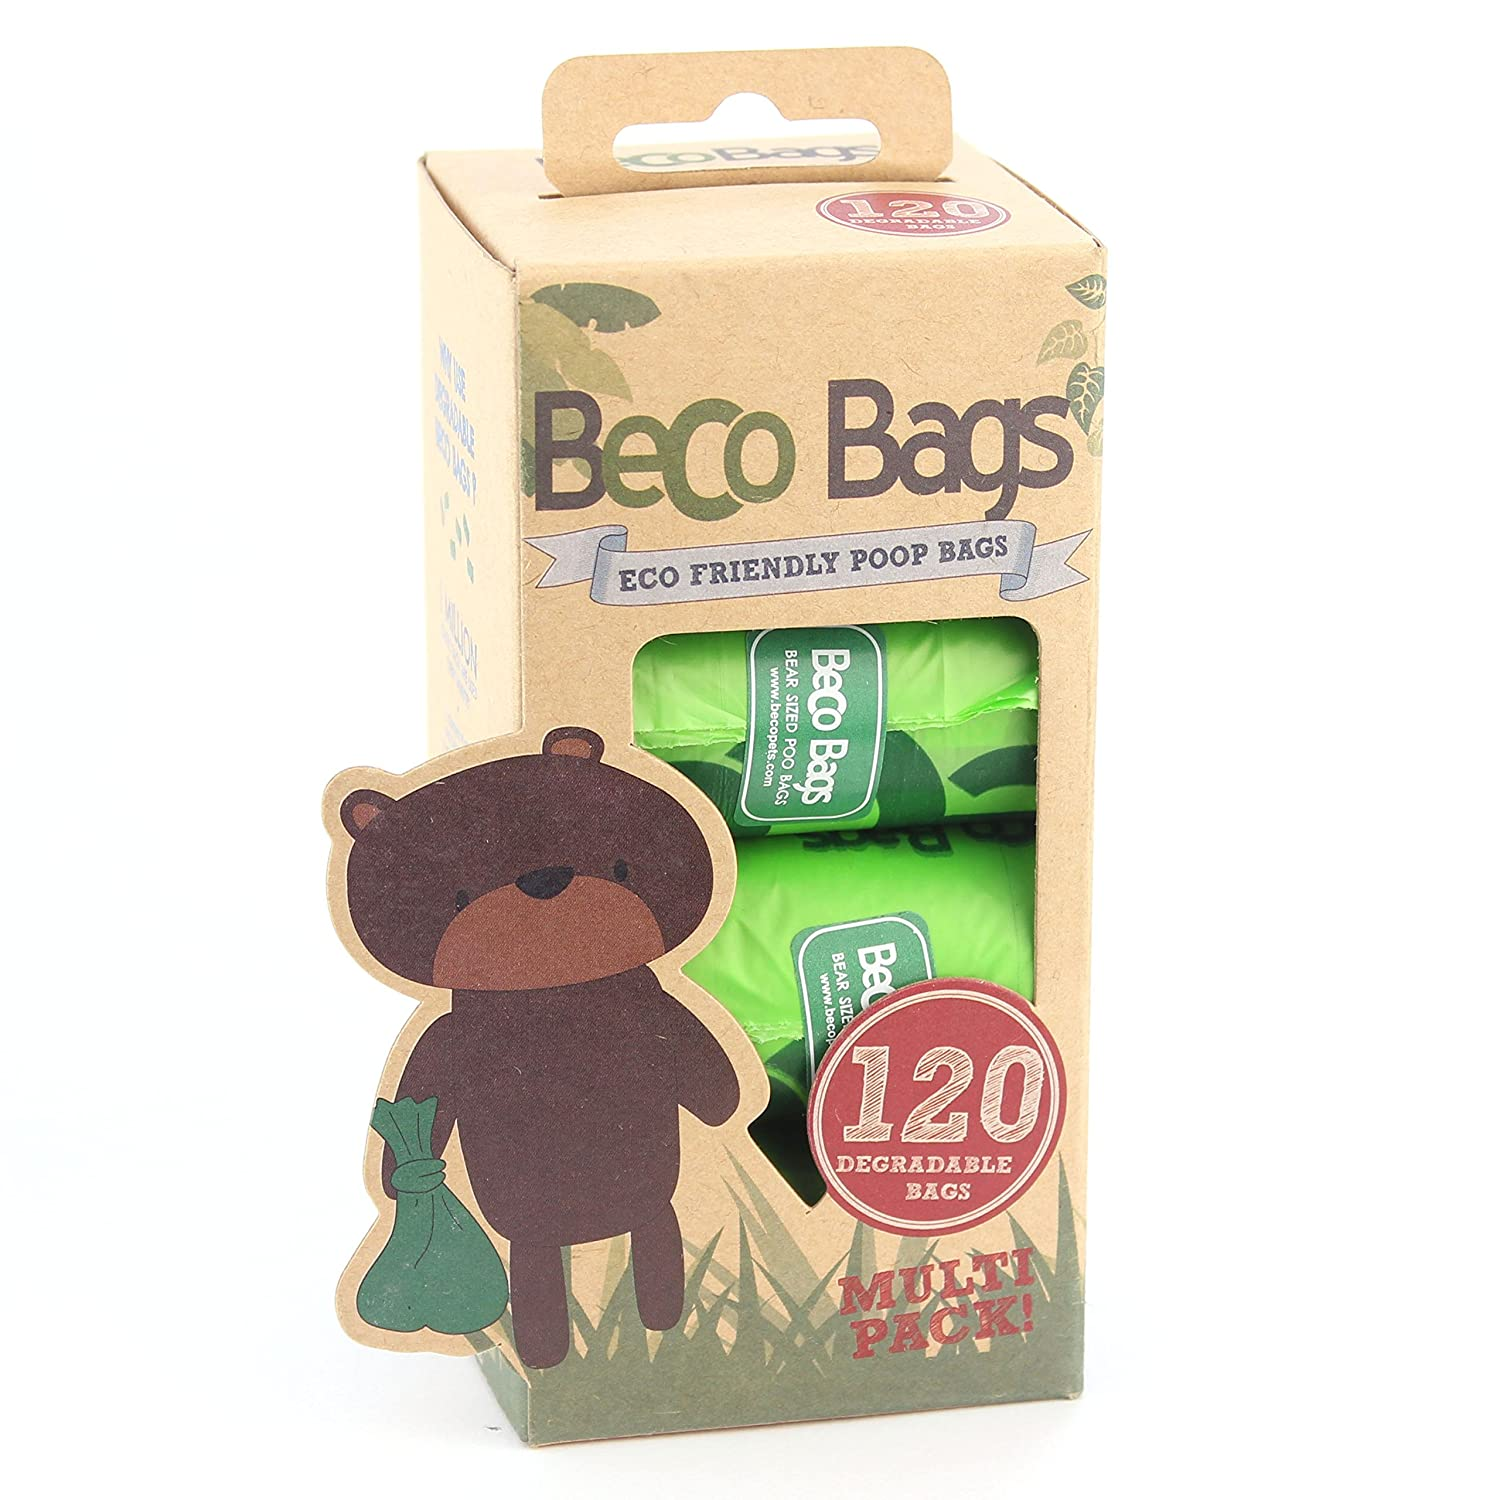 Beco Bags - 120 Large Unscented Poop Bags for Dogs - Eco-Conscious and BecoThings BBG- 120